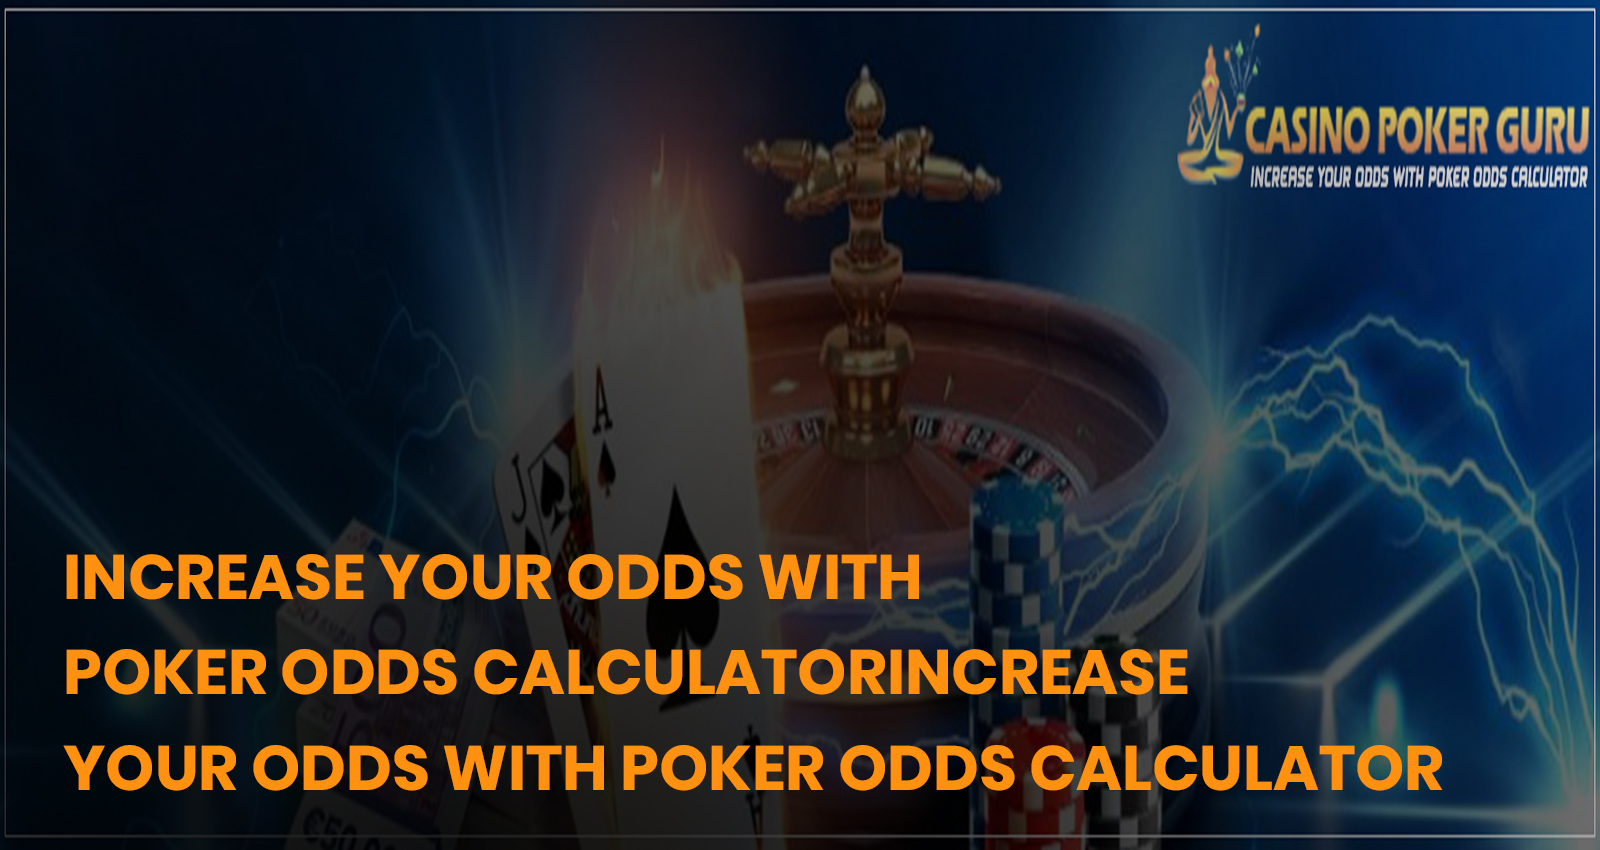 Increase Your Odds with Poker Odds CalculatorIncrease Your Odds with Poker Odds Calculator